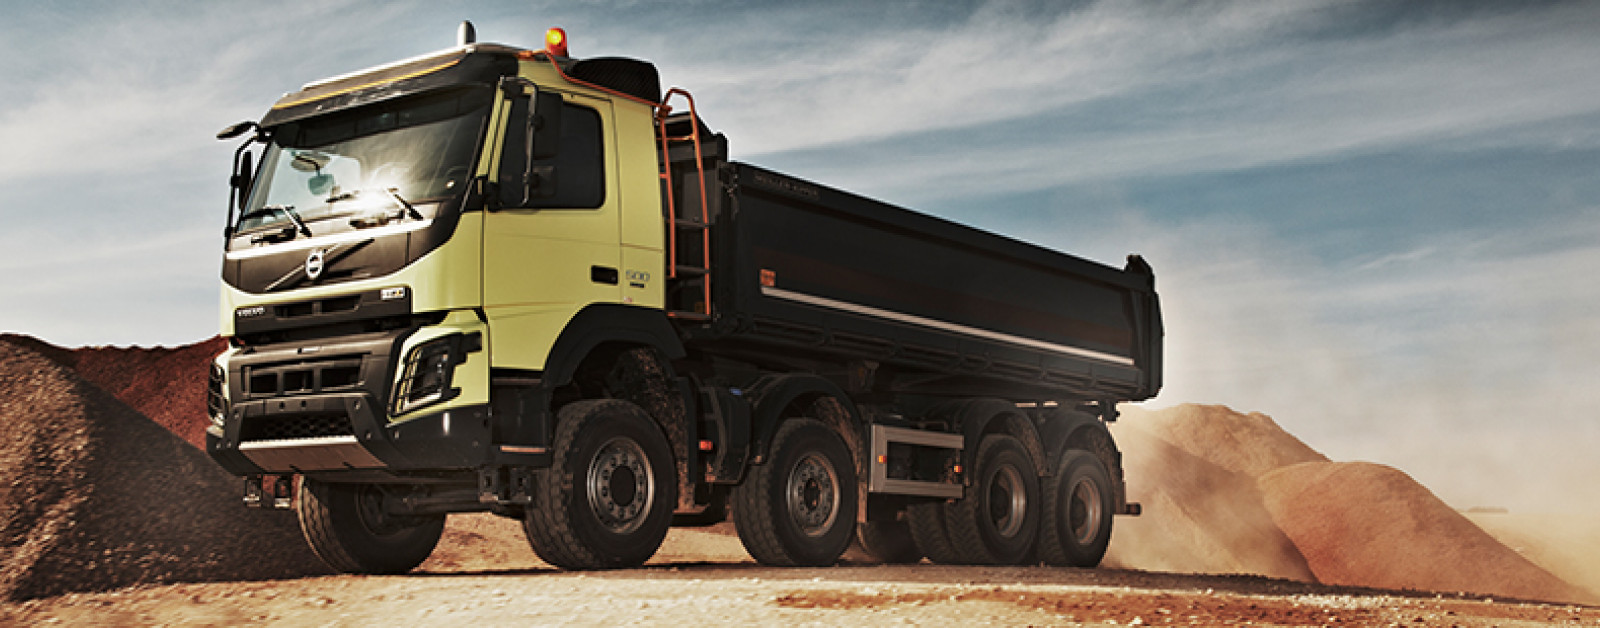 The new Volvo FMX